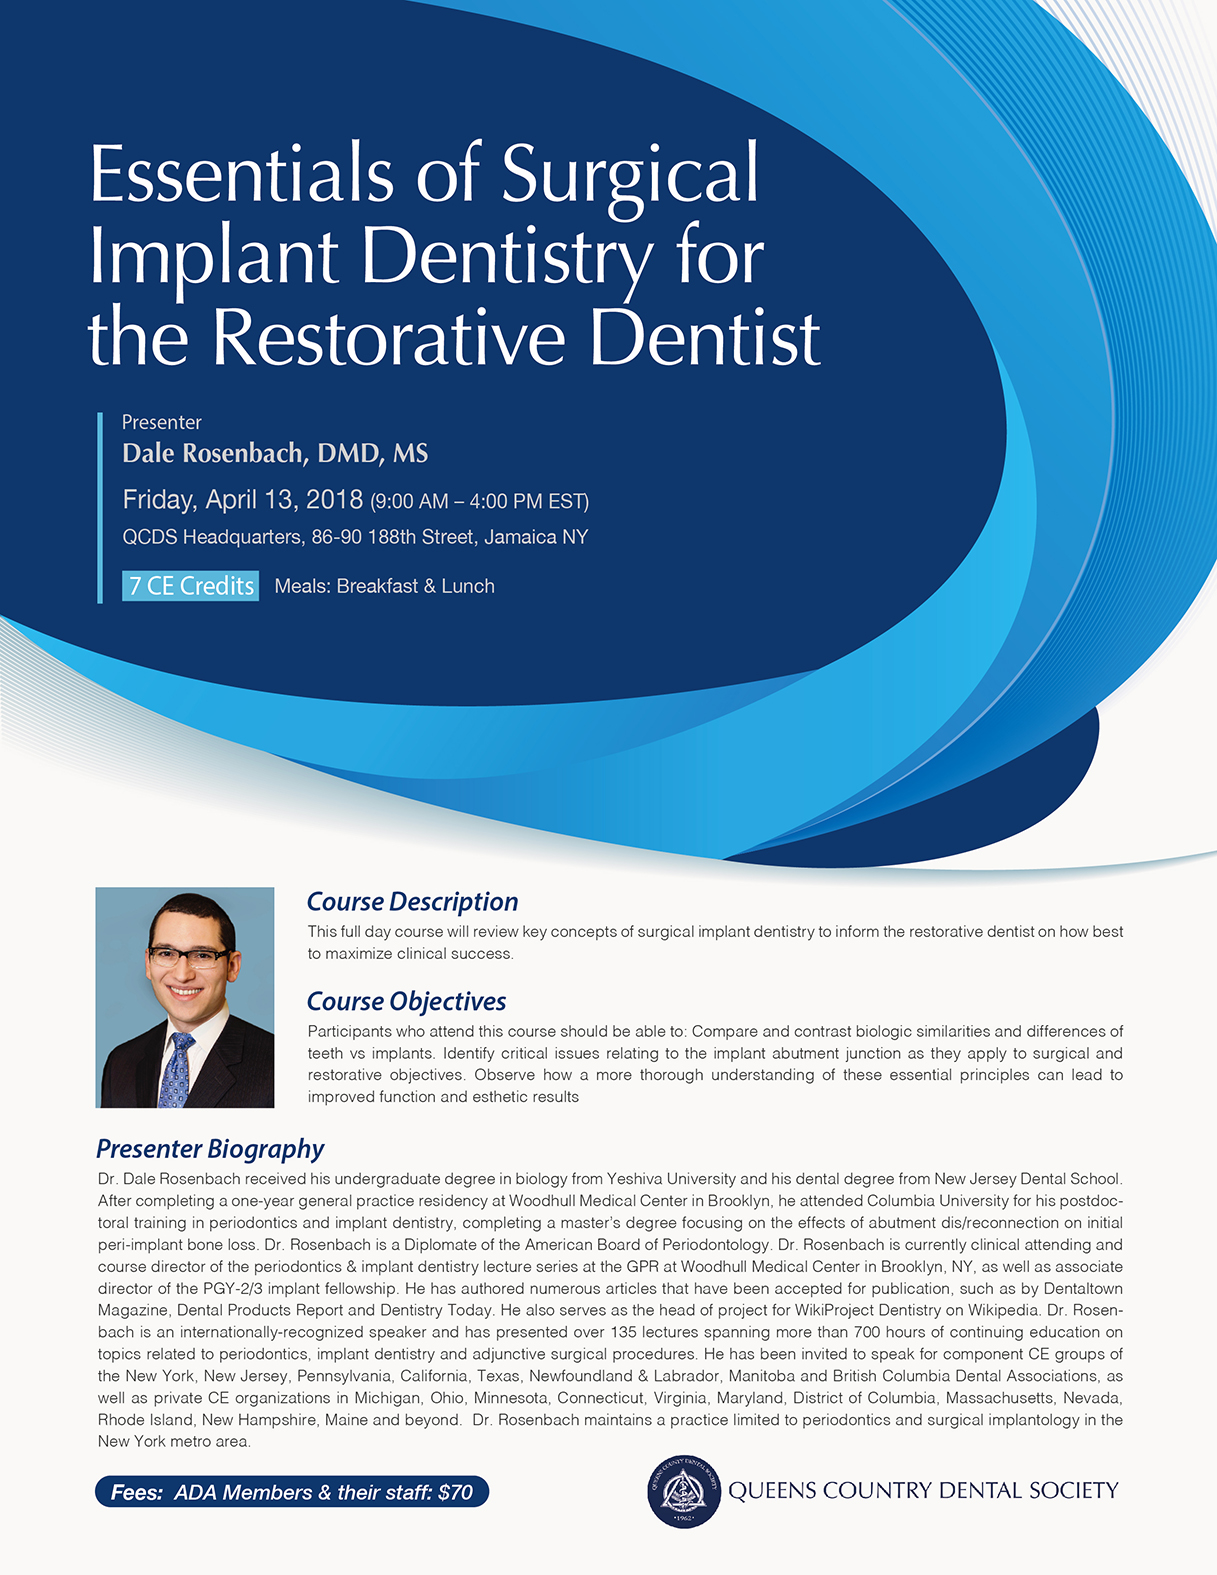 Essentials of Surgical Implant Dentistry for the Restorative Dentist